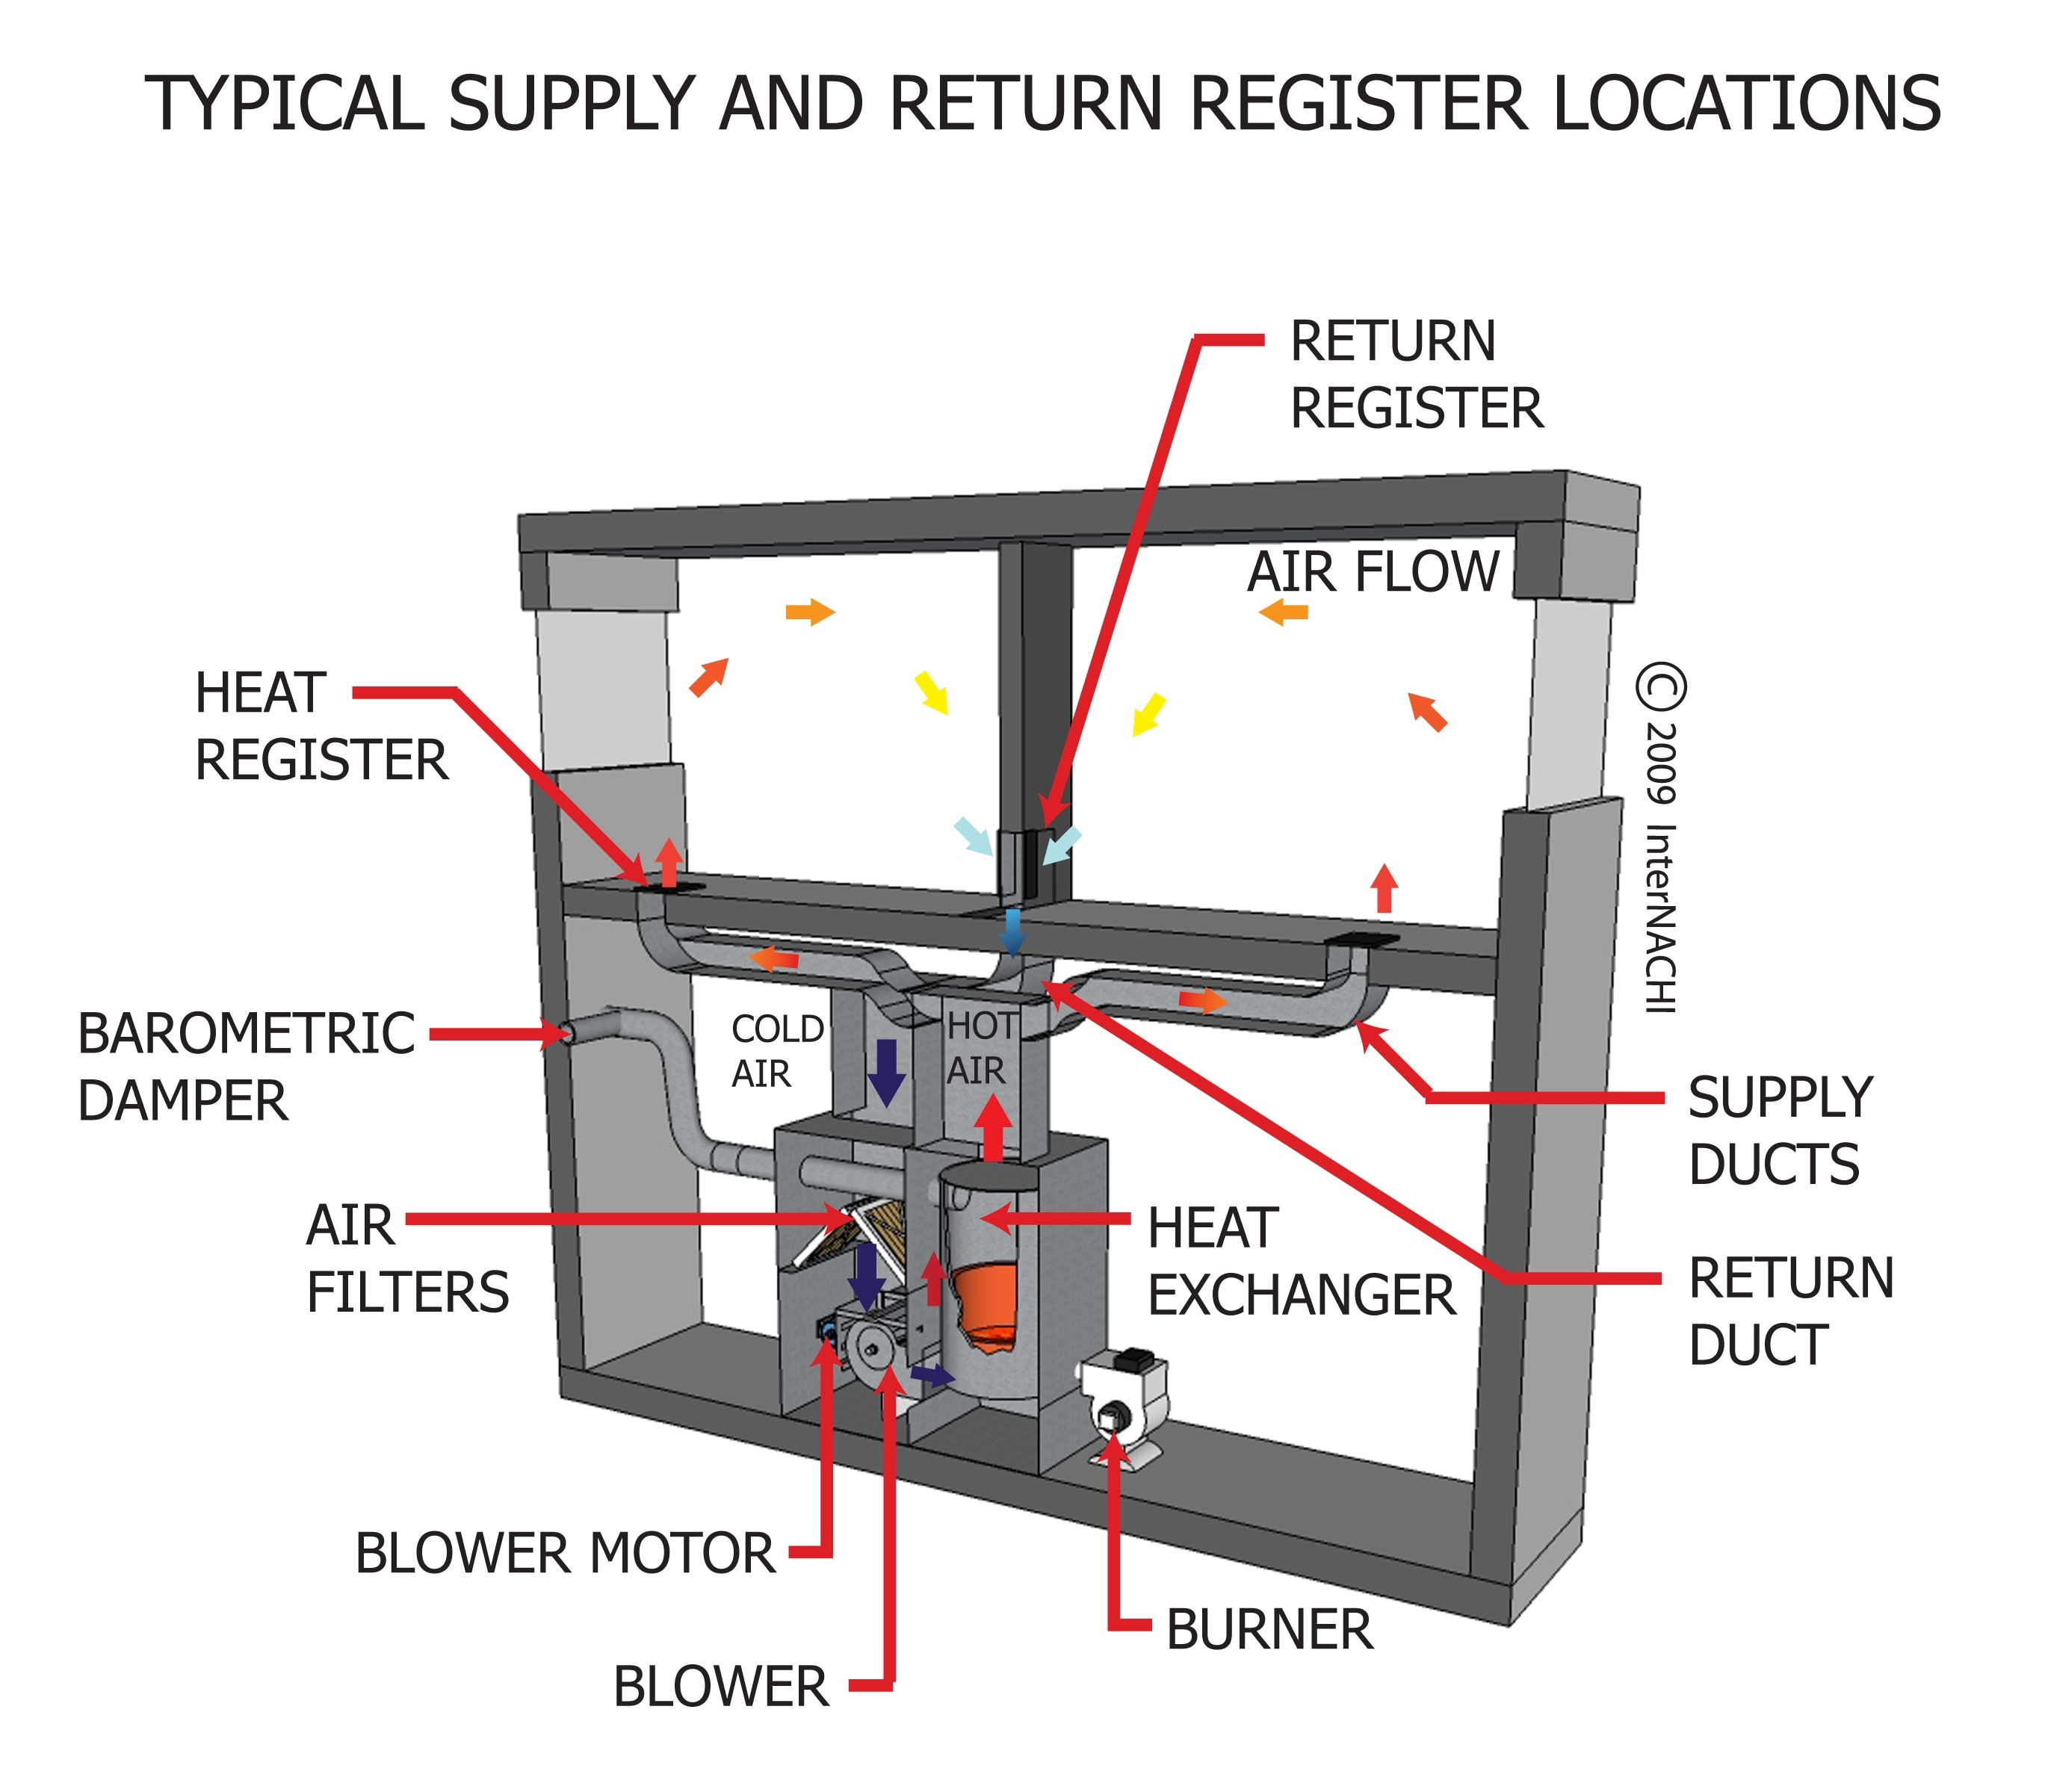 Typical supply and return register locations.